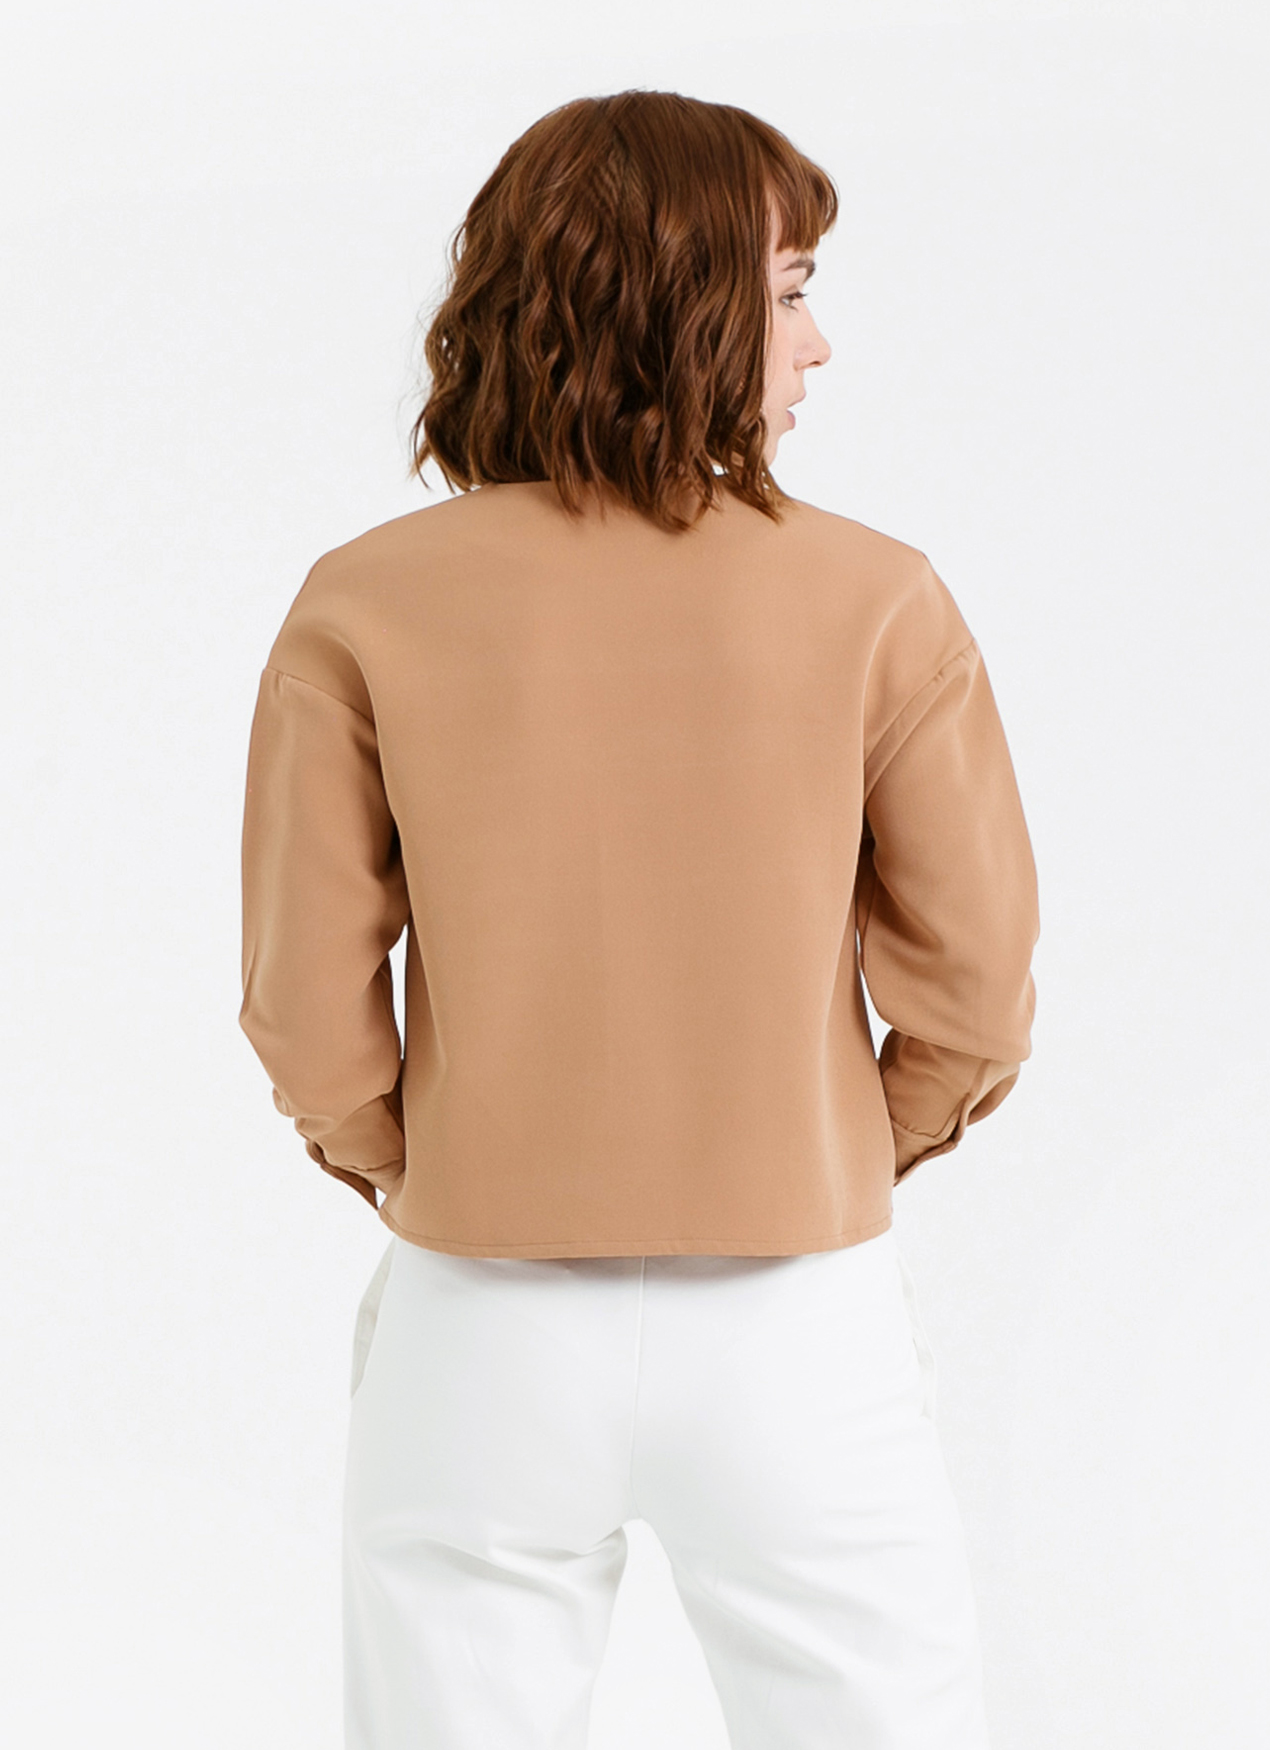 CLOTH INC Long Sleeve Pleated Top - Brown